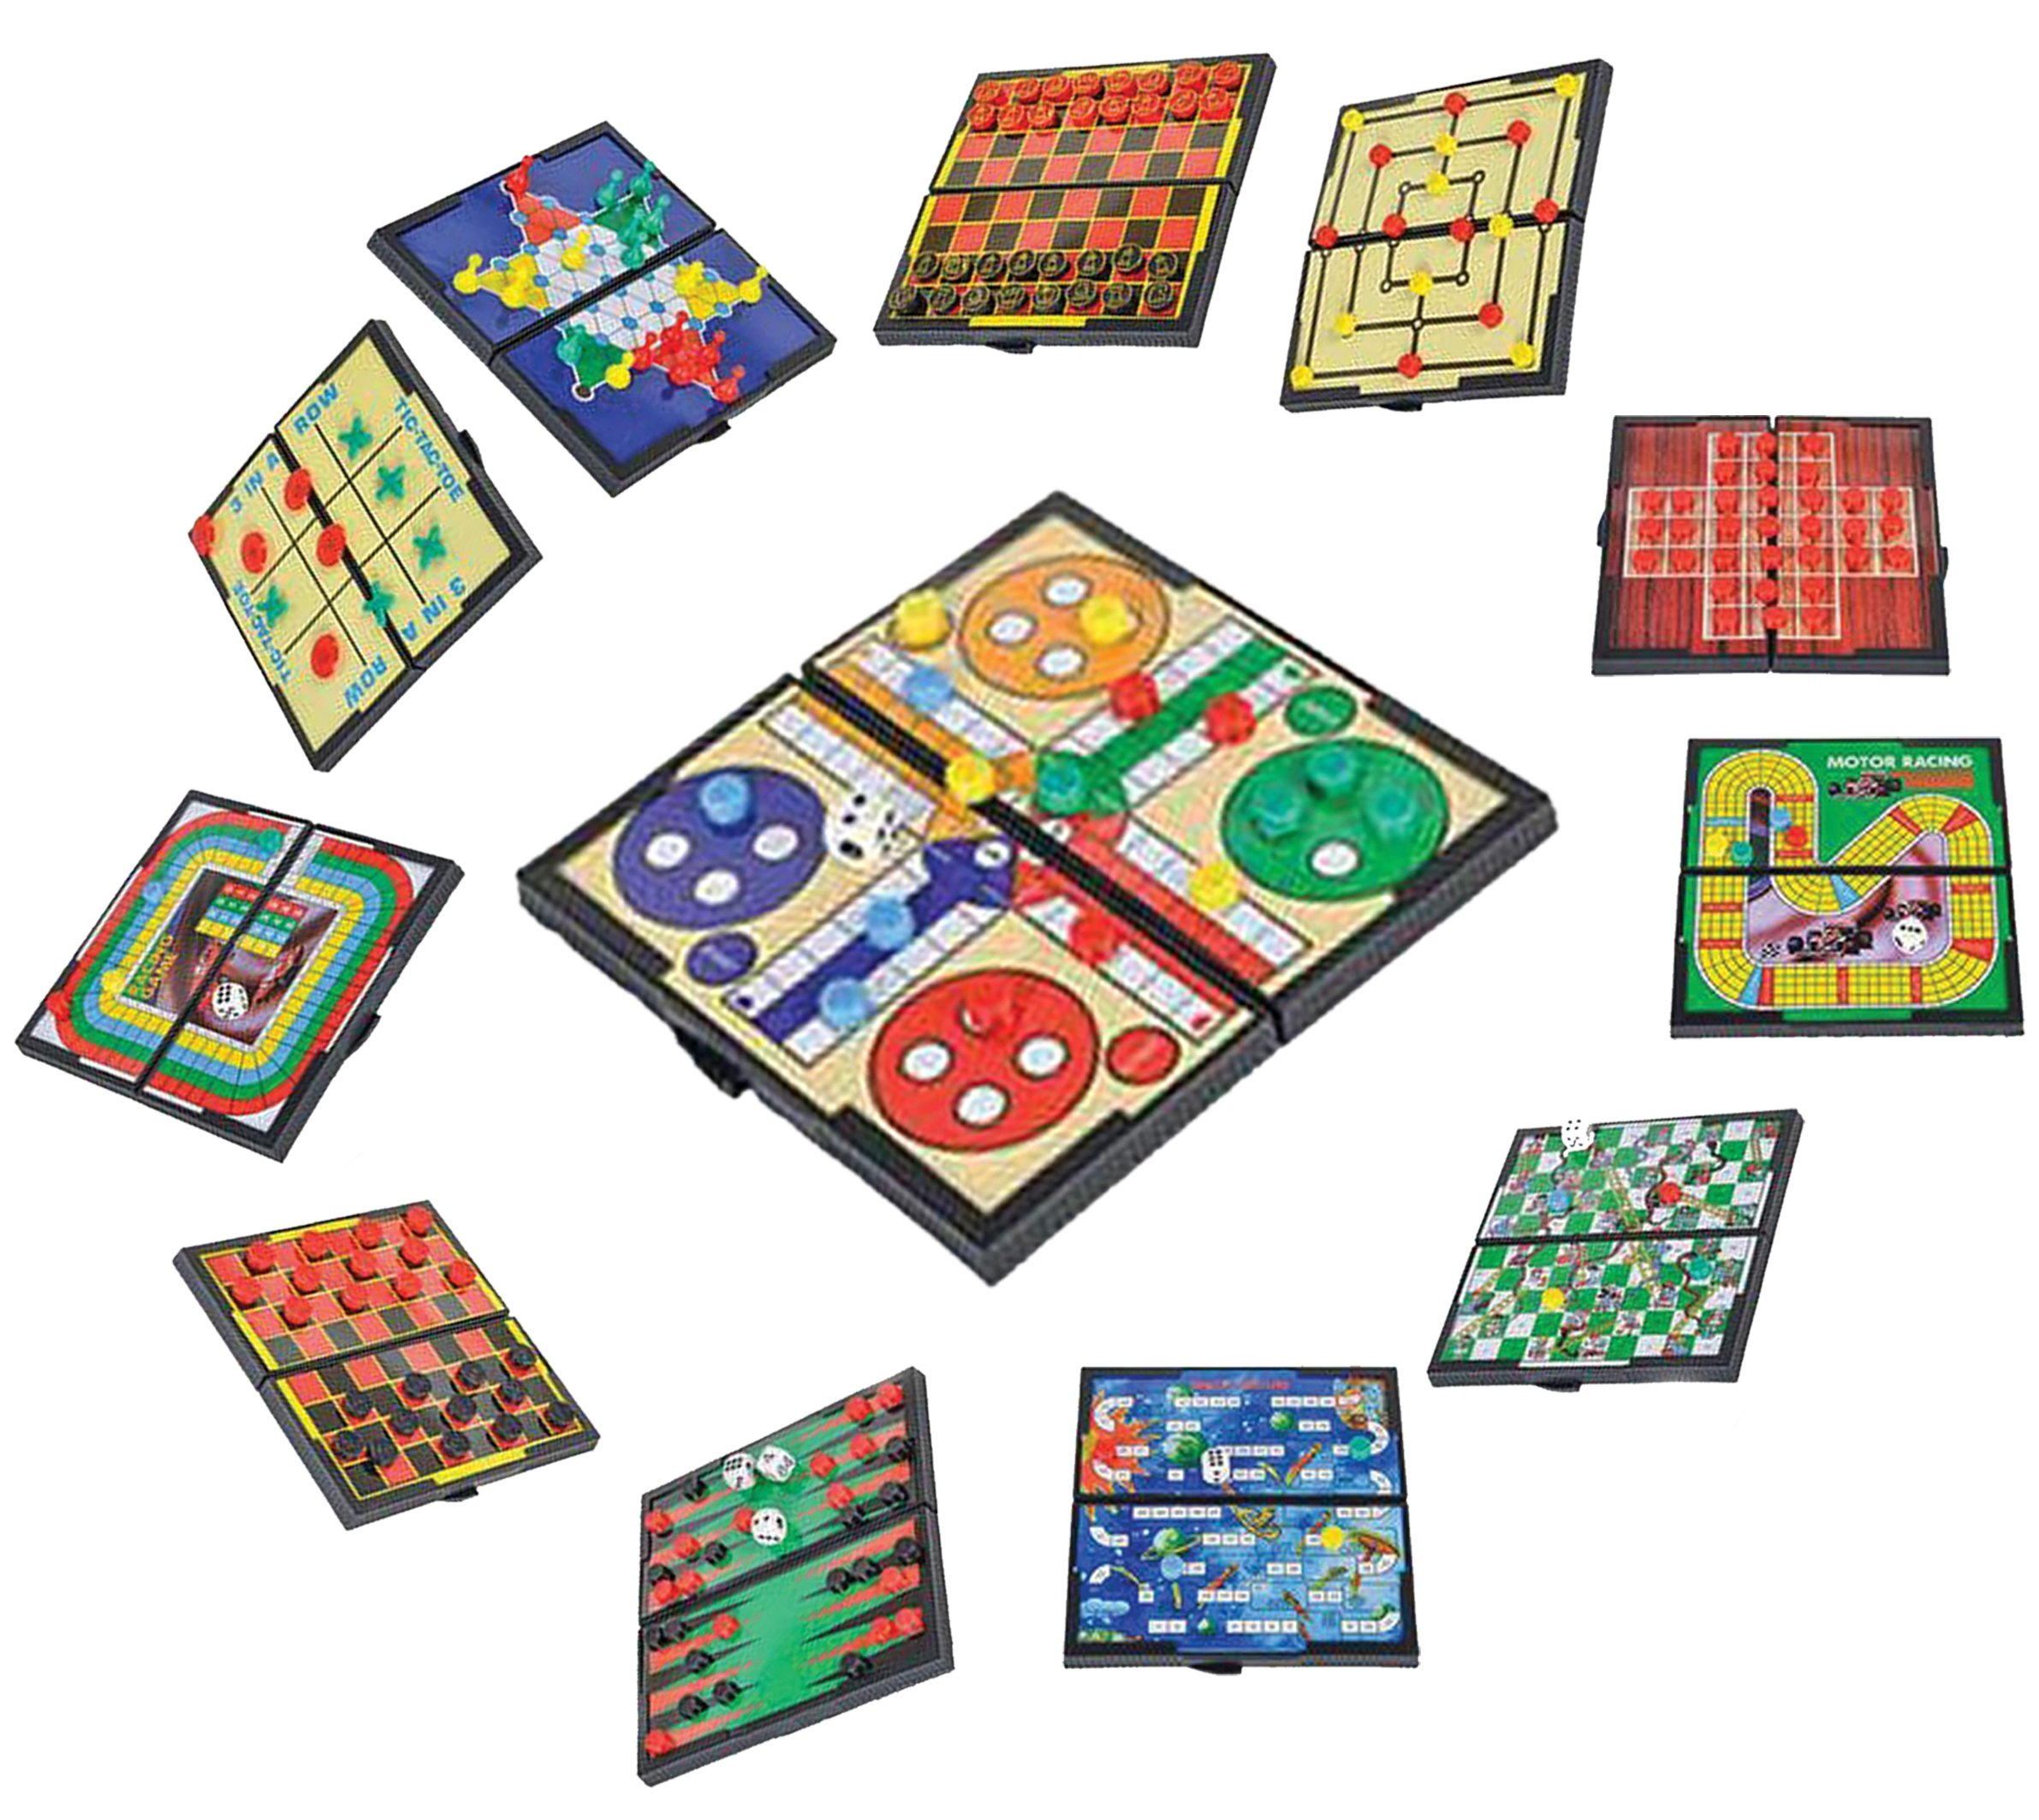 Magnetic Travel Board Games-Road Trip Entertainment, Checkers, Chess, Chinese Checkers, Tic Tac Toe, Backgammon, Snakes And Ladders, Solitaire, Nine Mens Morris, Auto Racing, Ludo, Space Venture by Big Mo's Toys